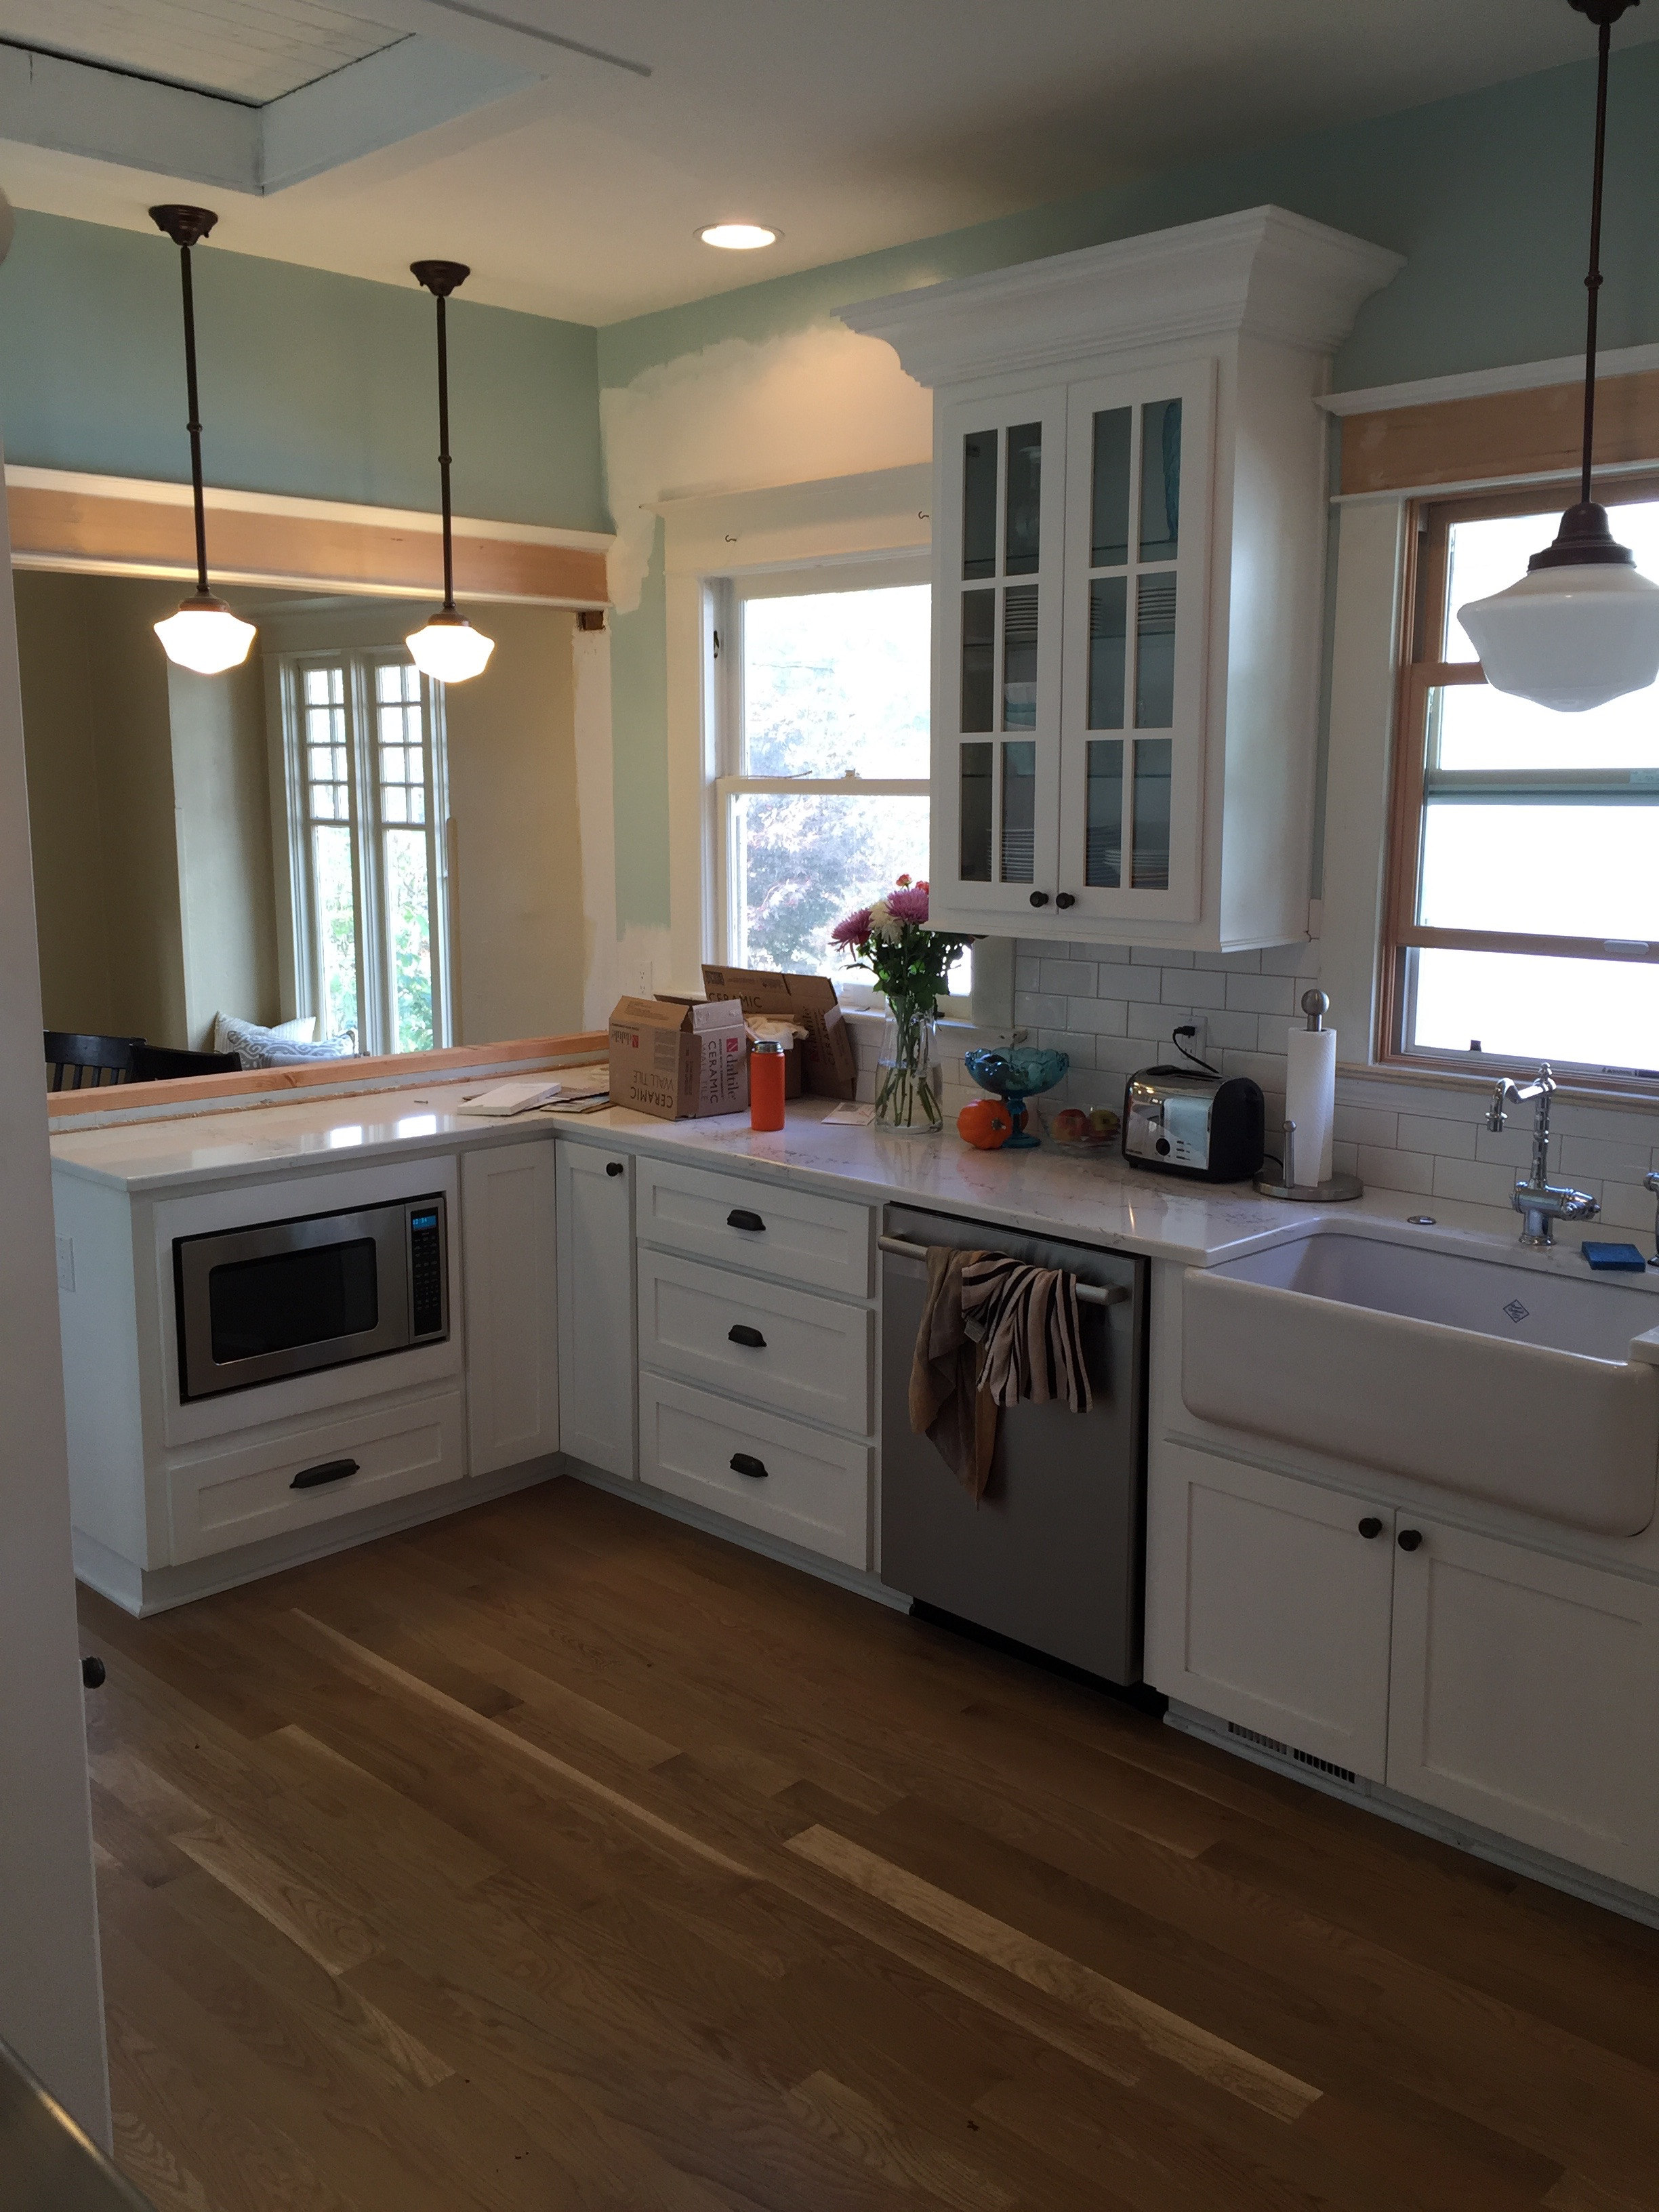 New Everything kitchen remodel